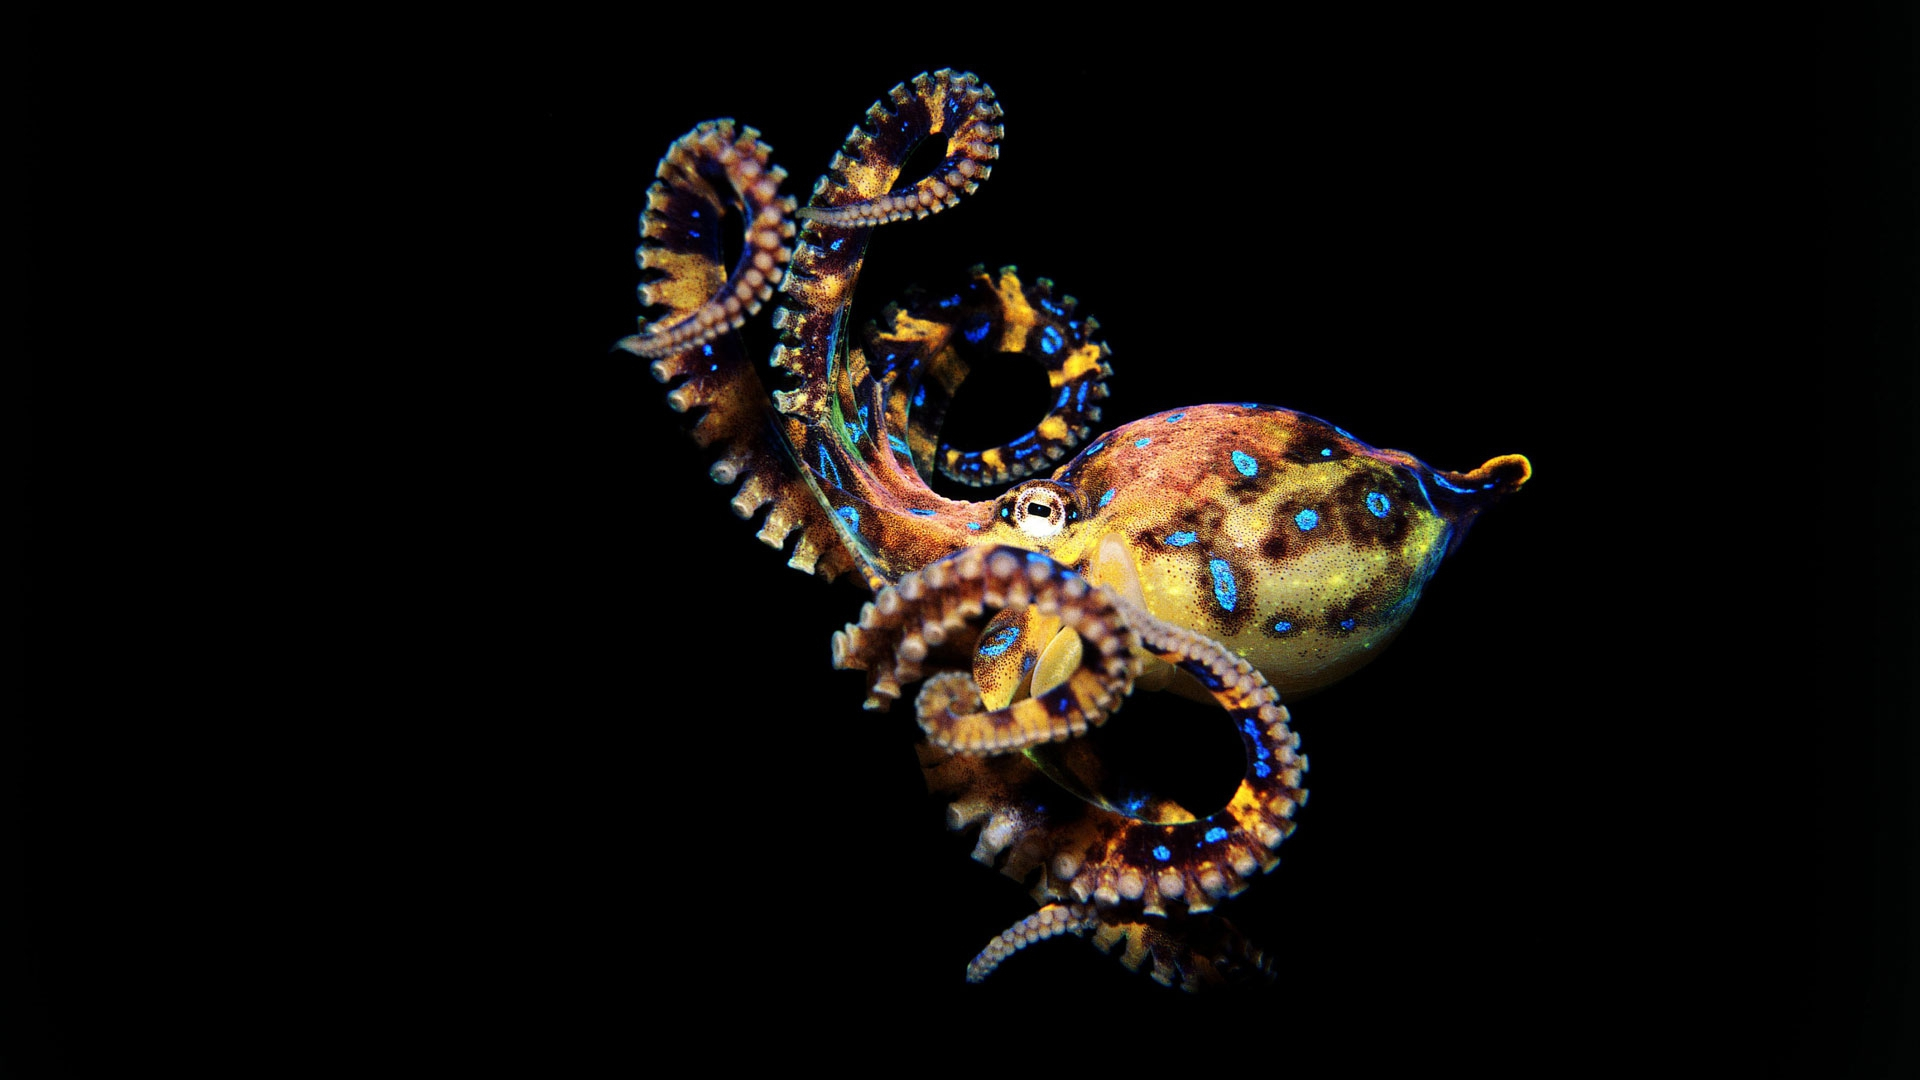 Octopus Hd Wallpaper